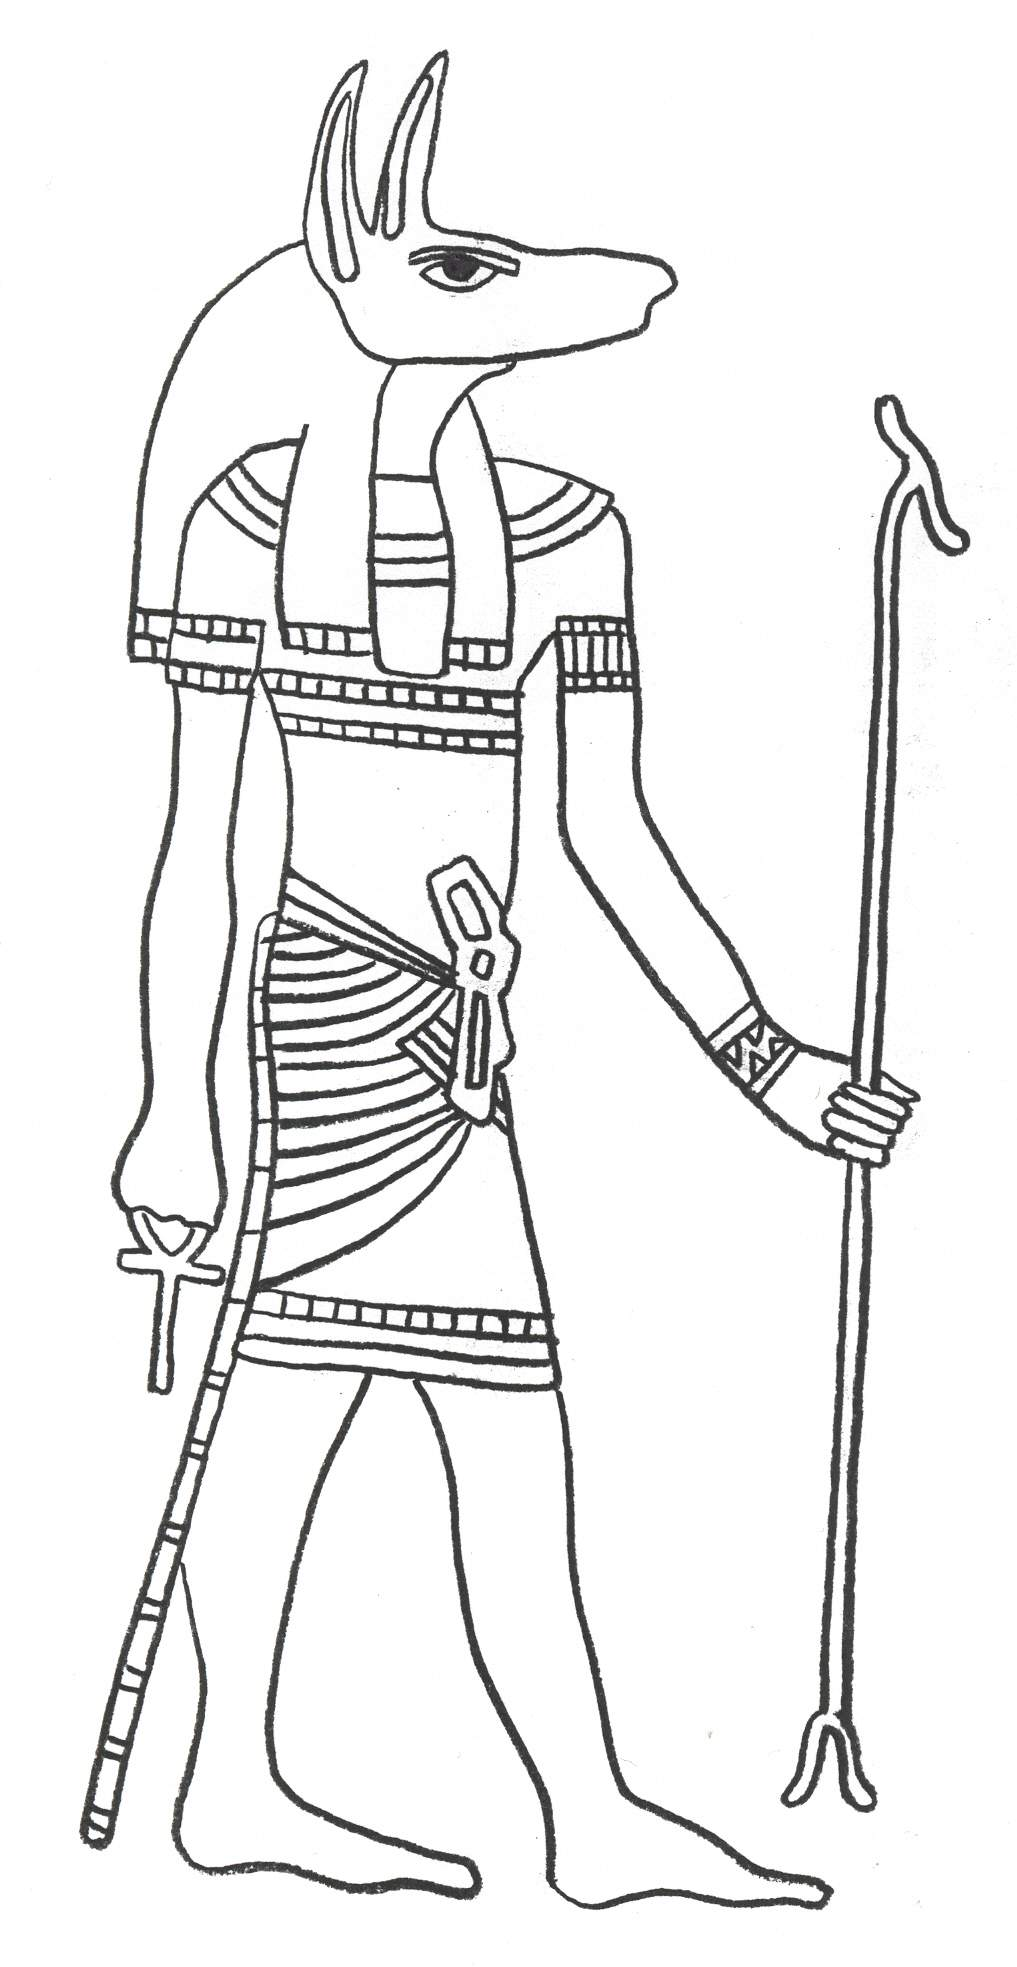 nile boats coloring pages - photo#6